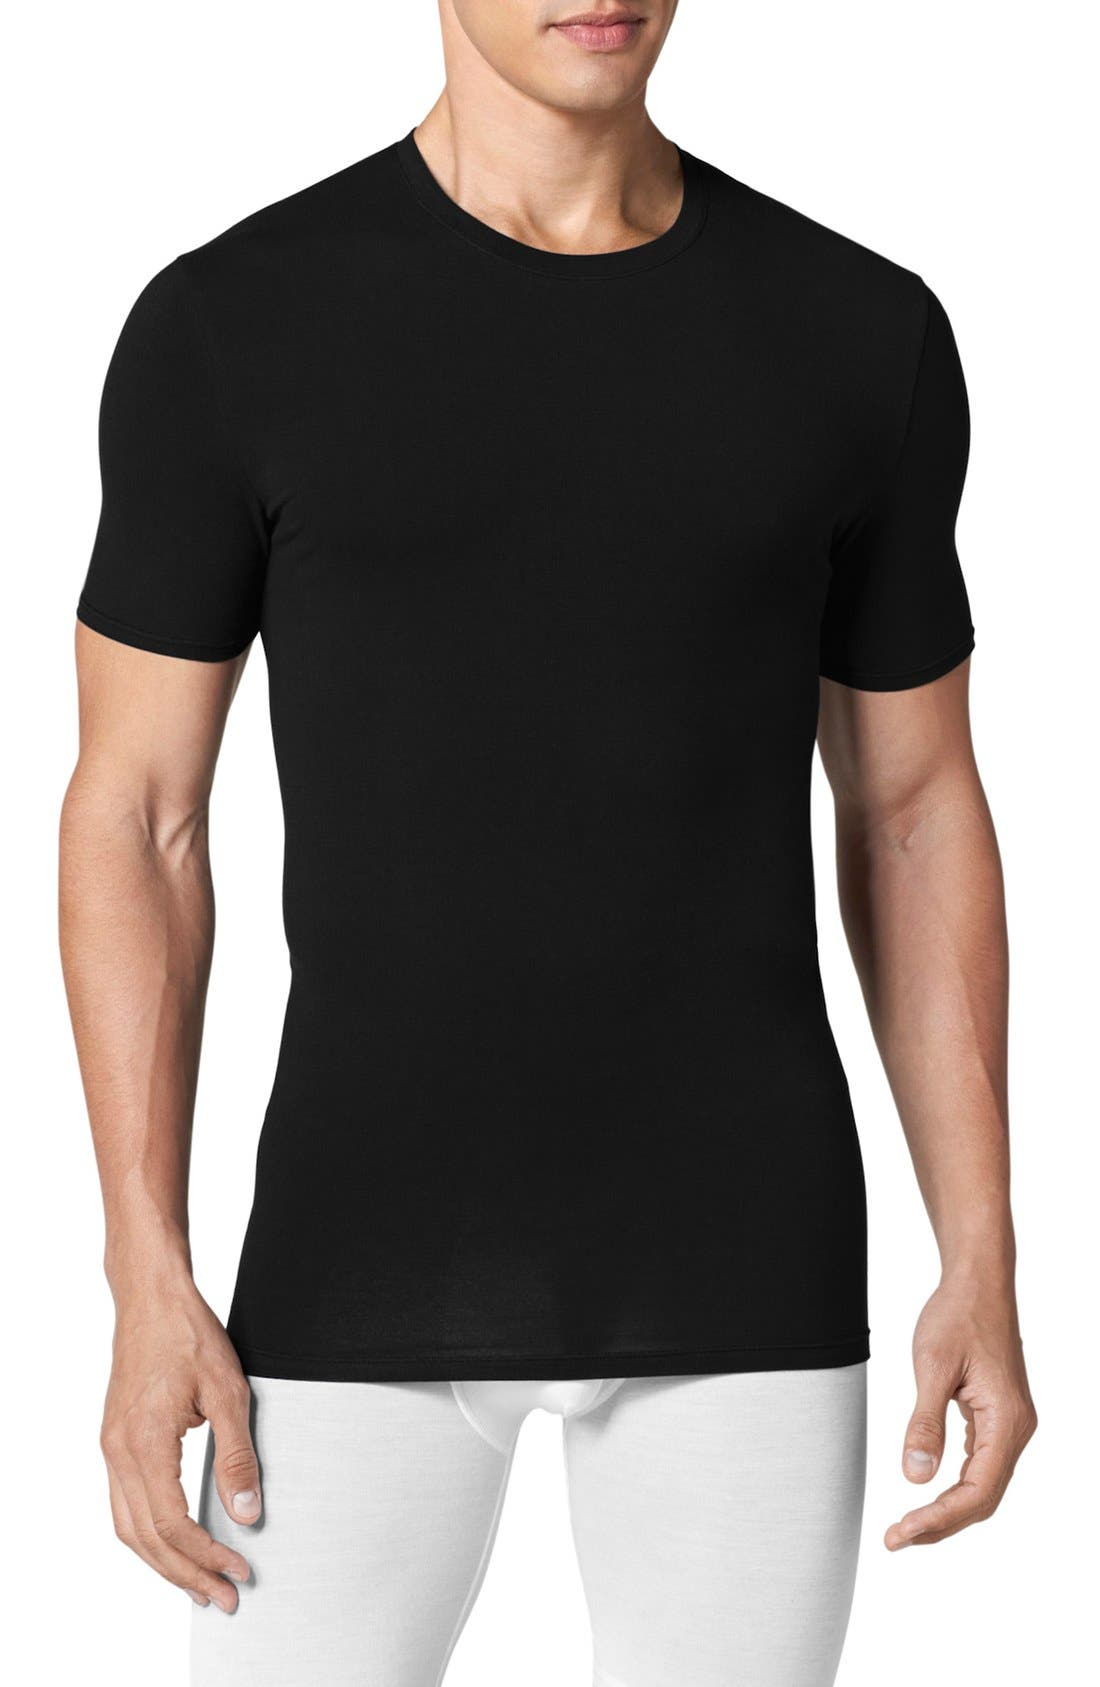 Alternate Image 1 Selected - Tommy John 'Second Skin' Crewneck Undershirt